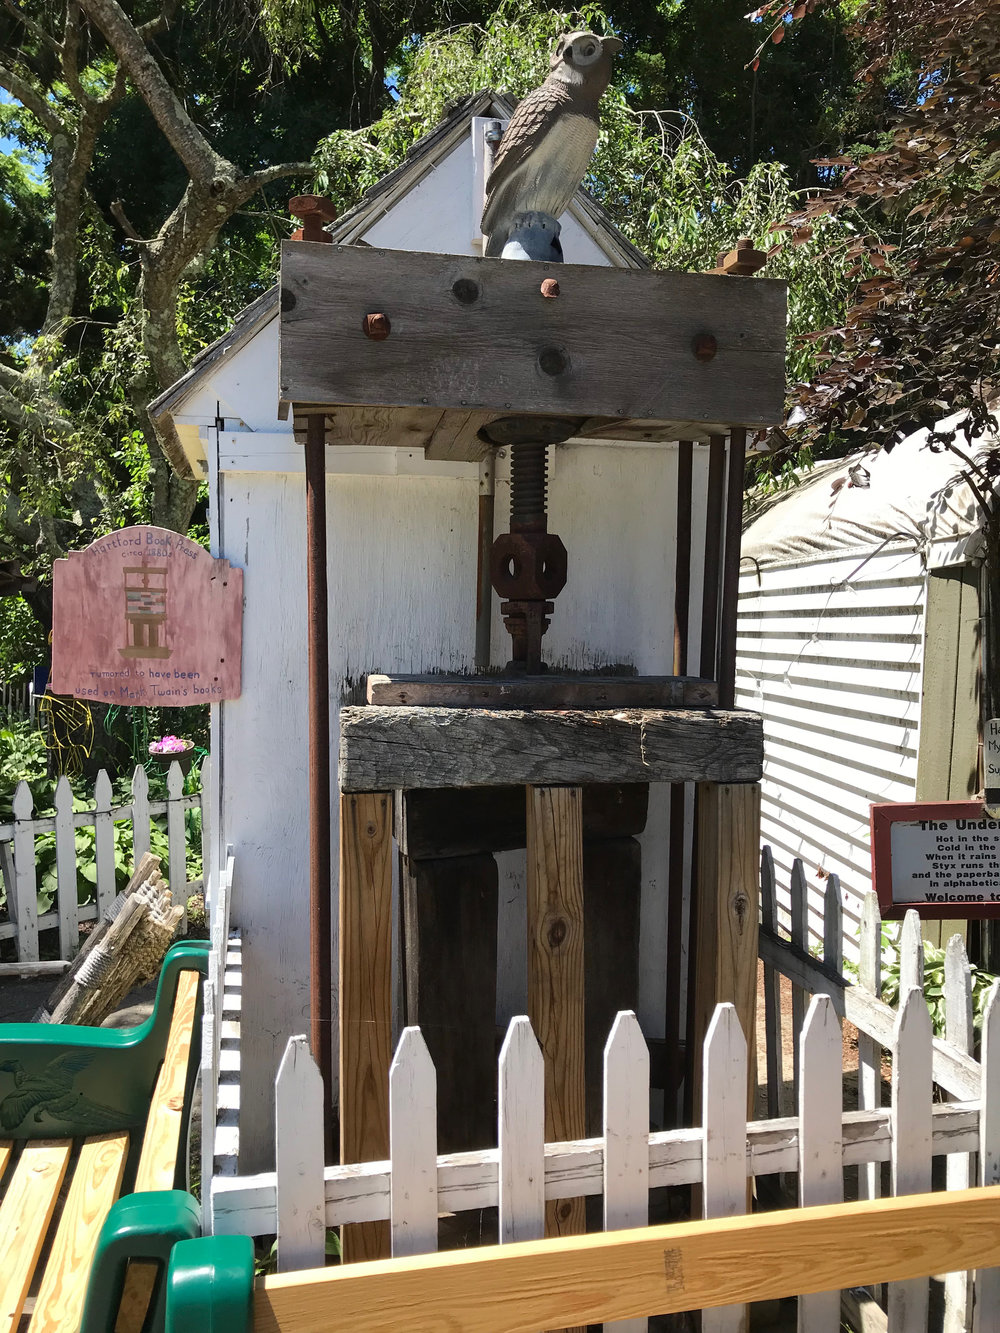 An antique book press rumored to have been used on Mark Twain's books.